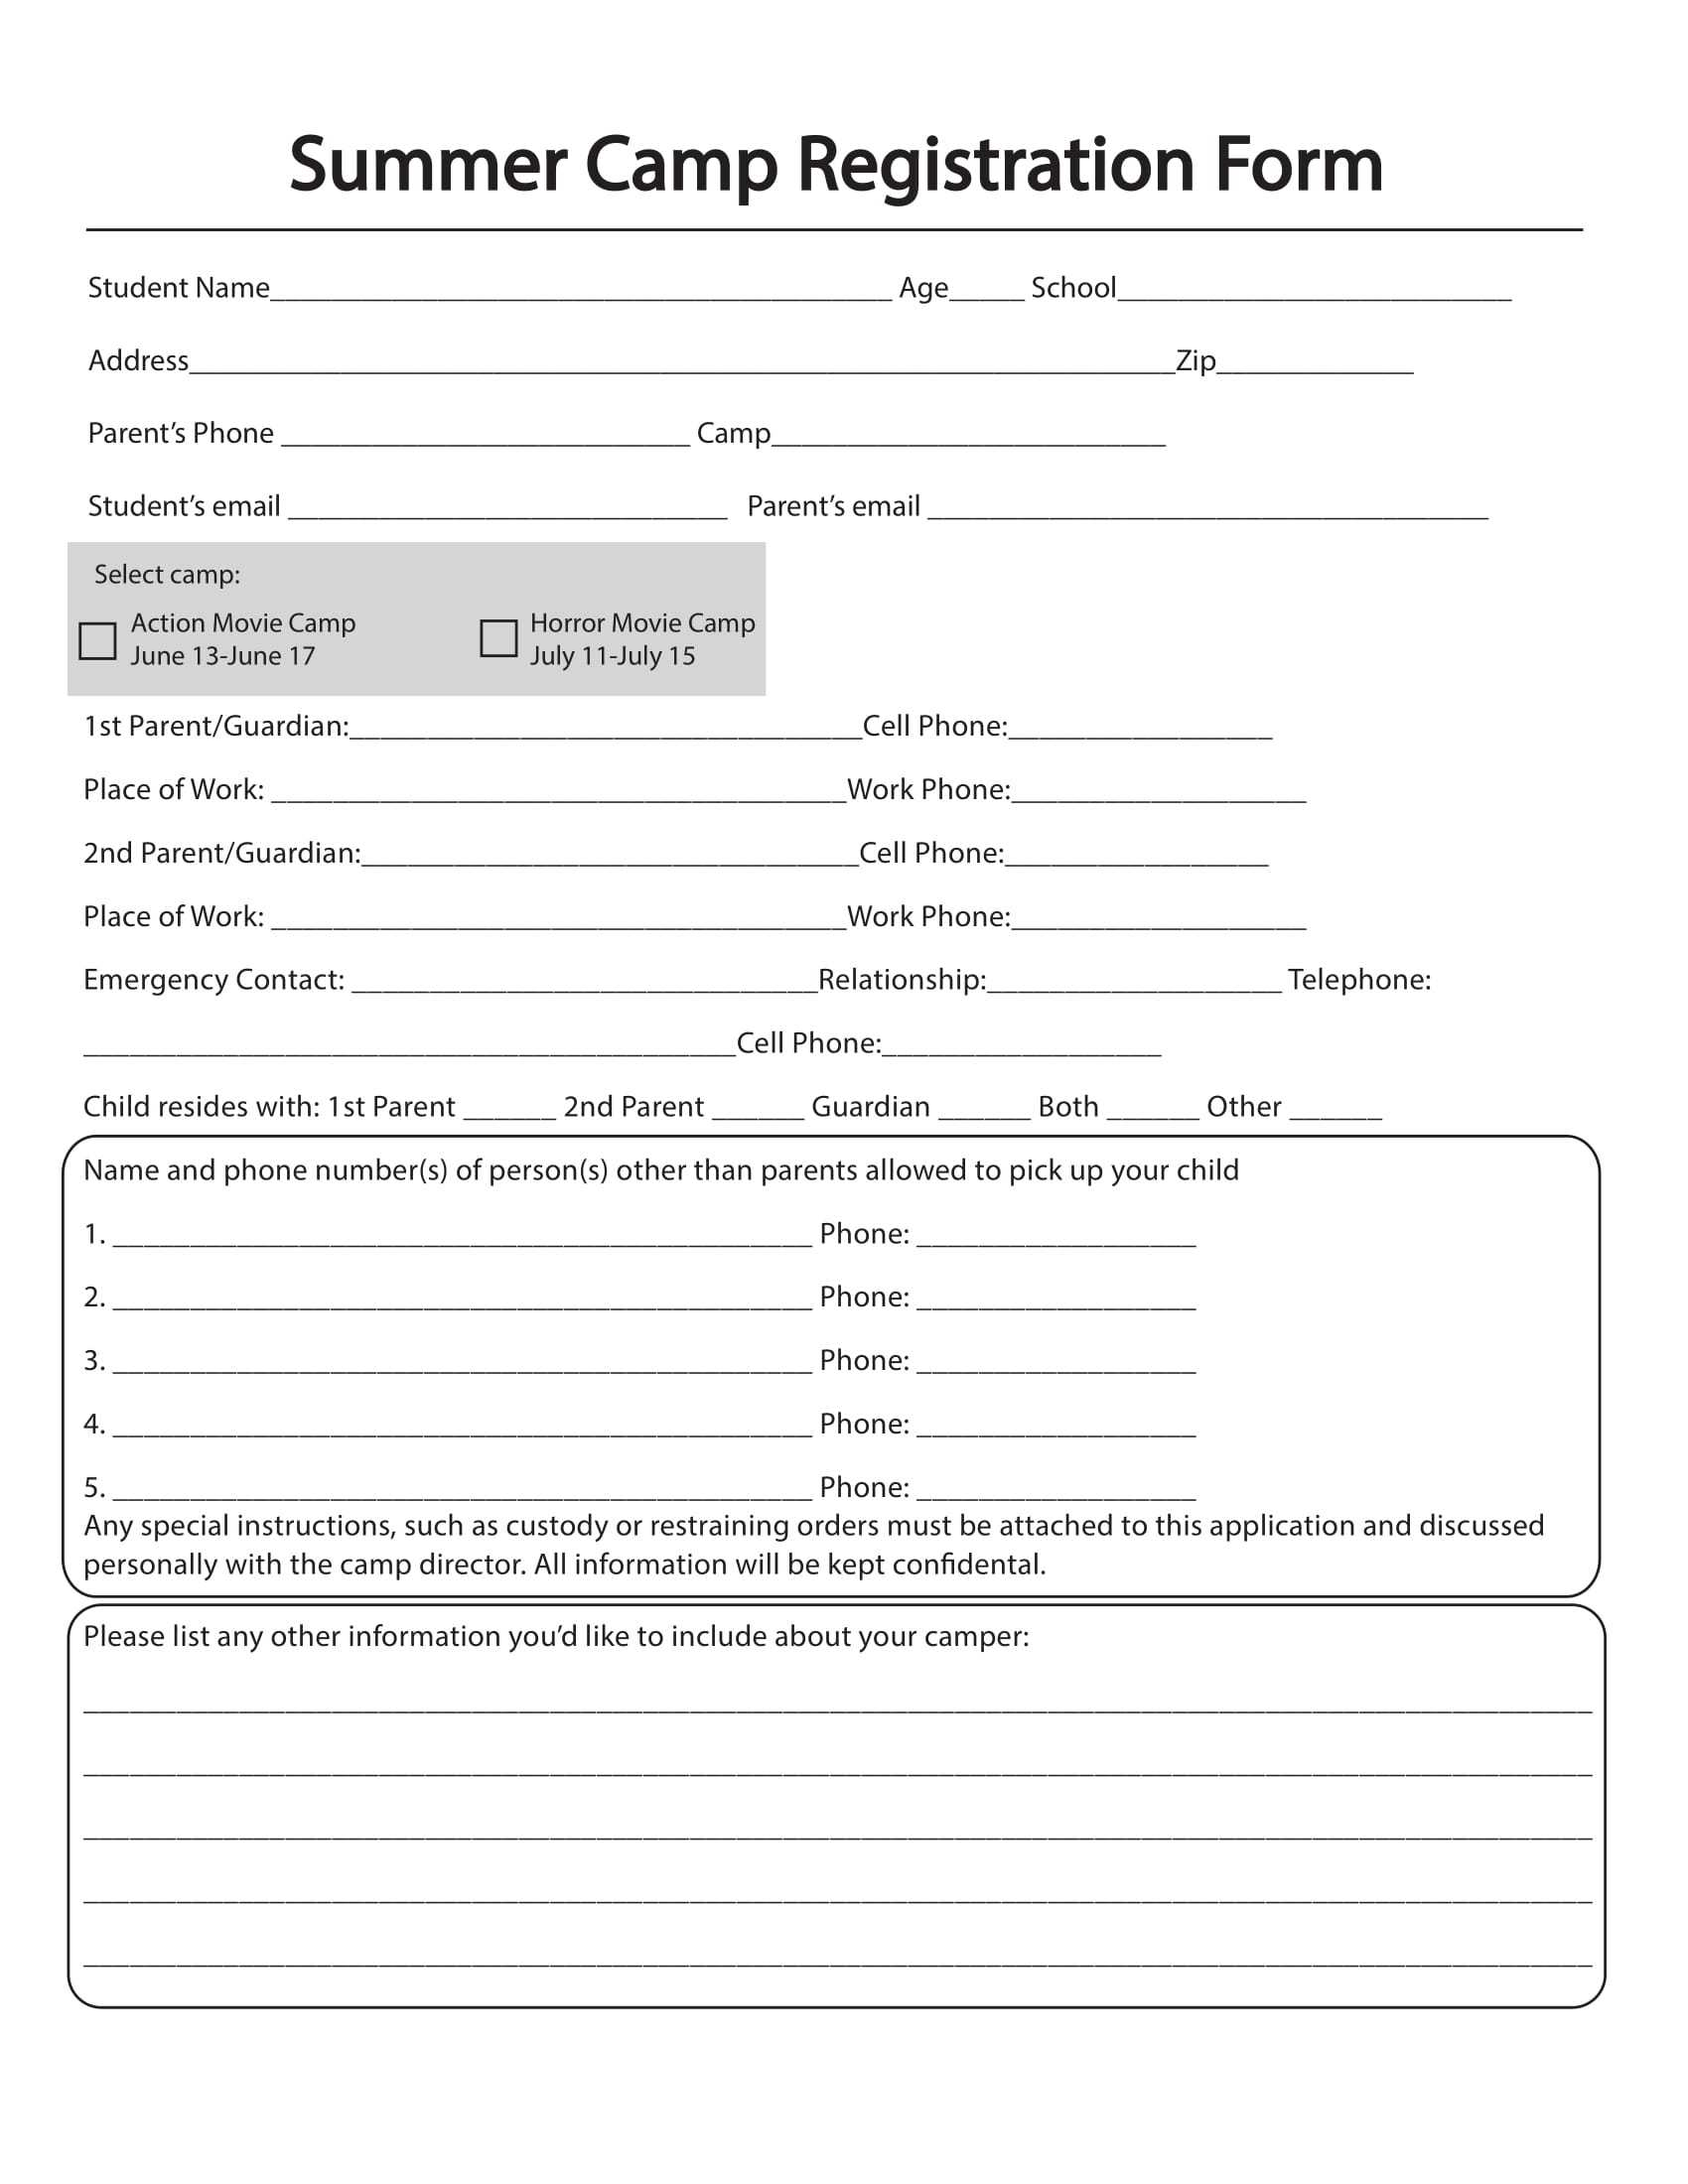 Free 10+ Printable Summer Camp Registration Forms In Pdf Throughout Camp Registration Form Template Word